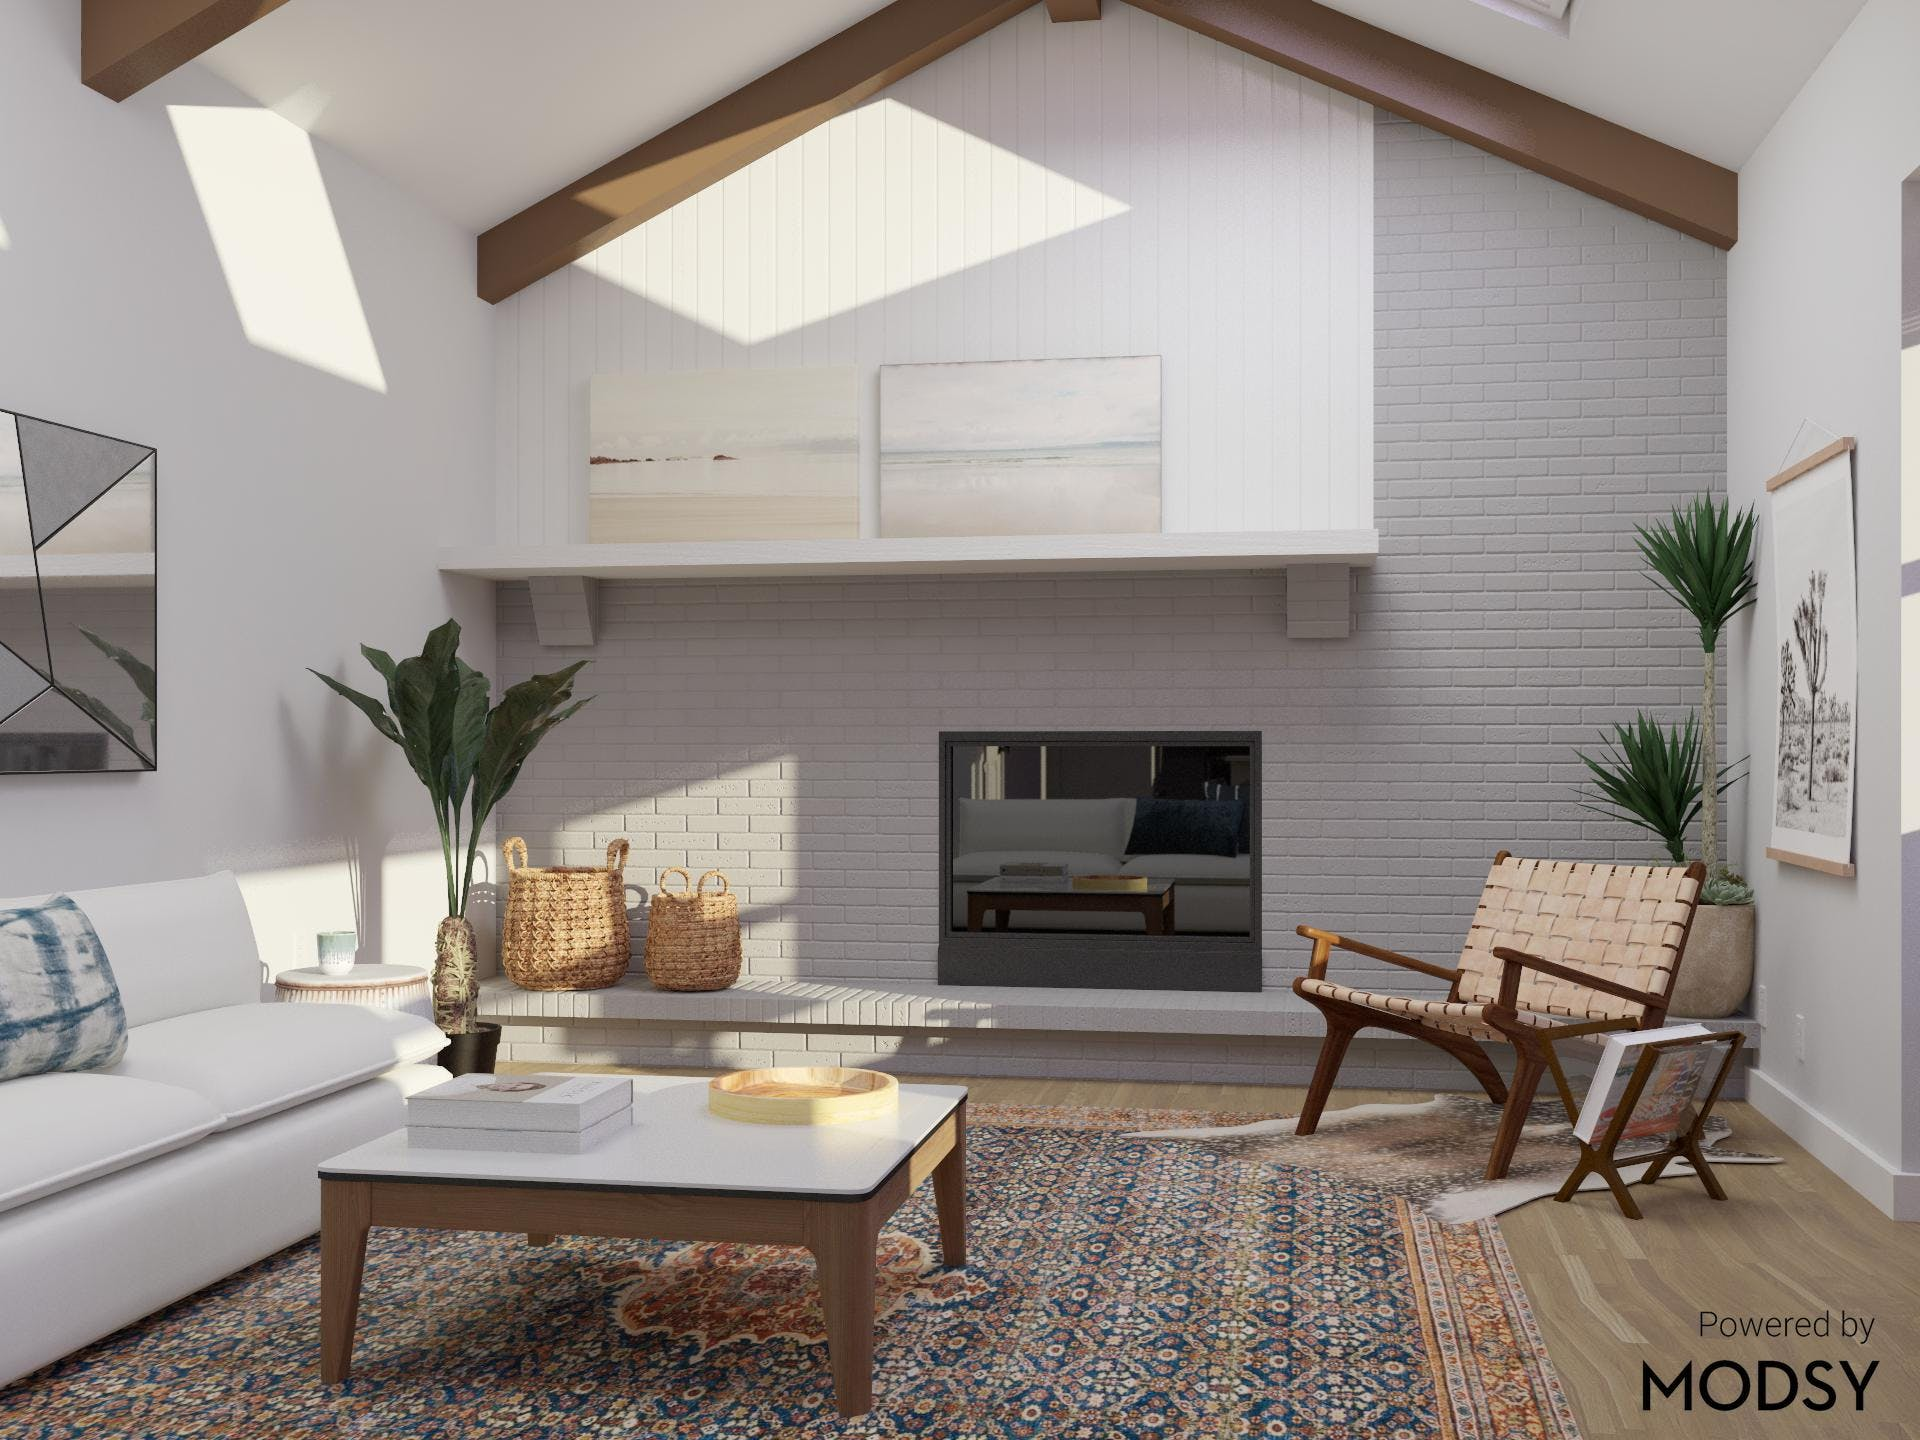 Eclectic Living Room with Mid-Century-Modern Appeal and Cozy Fireplace